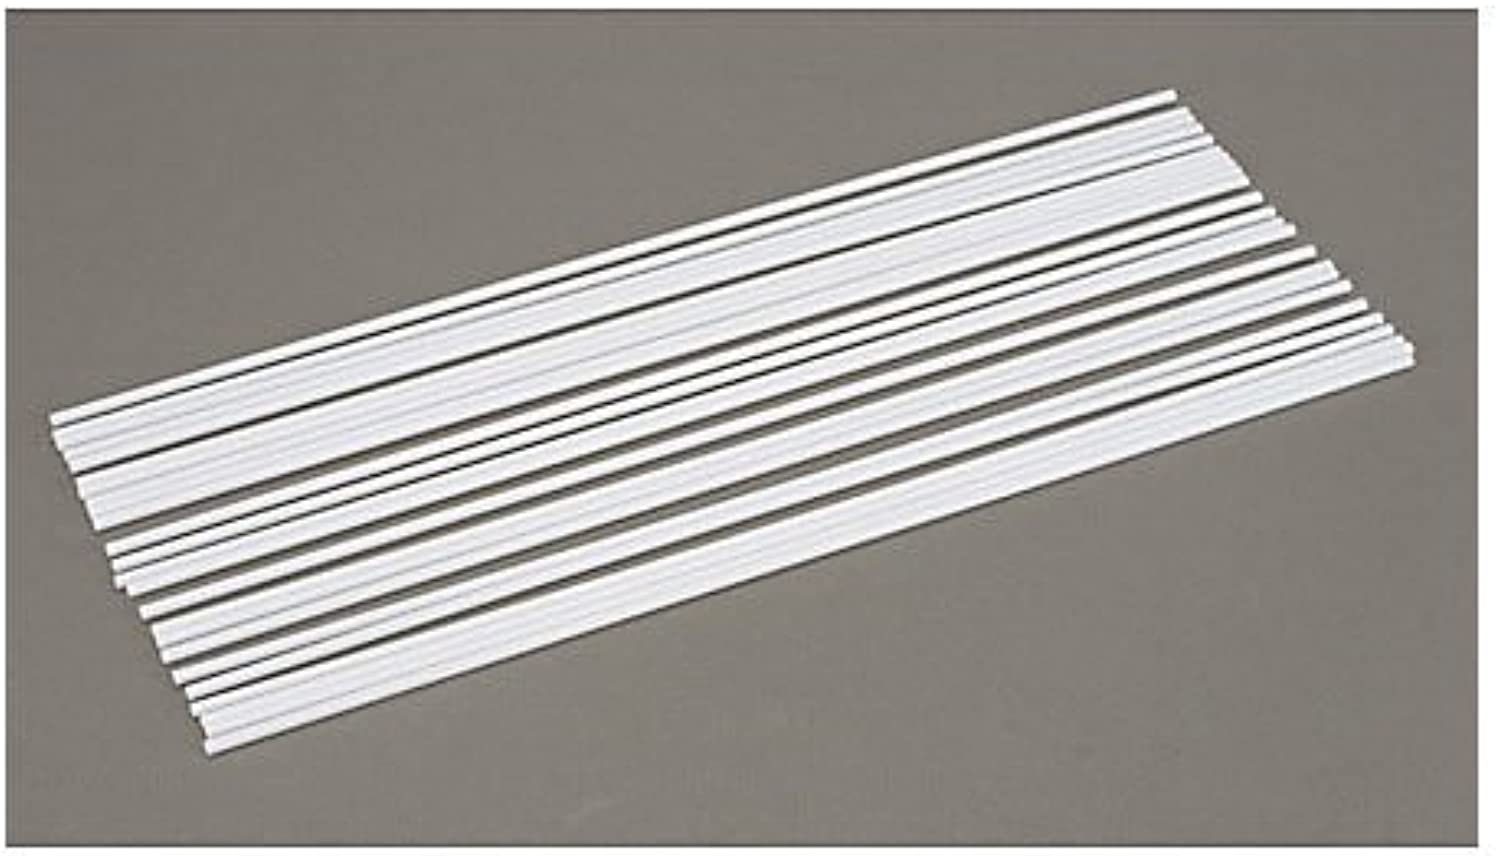 DuBro 2343 Antenna Tube White (24), 2343